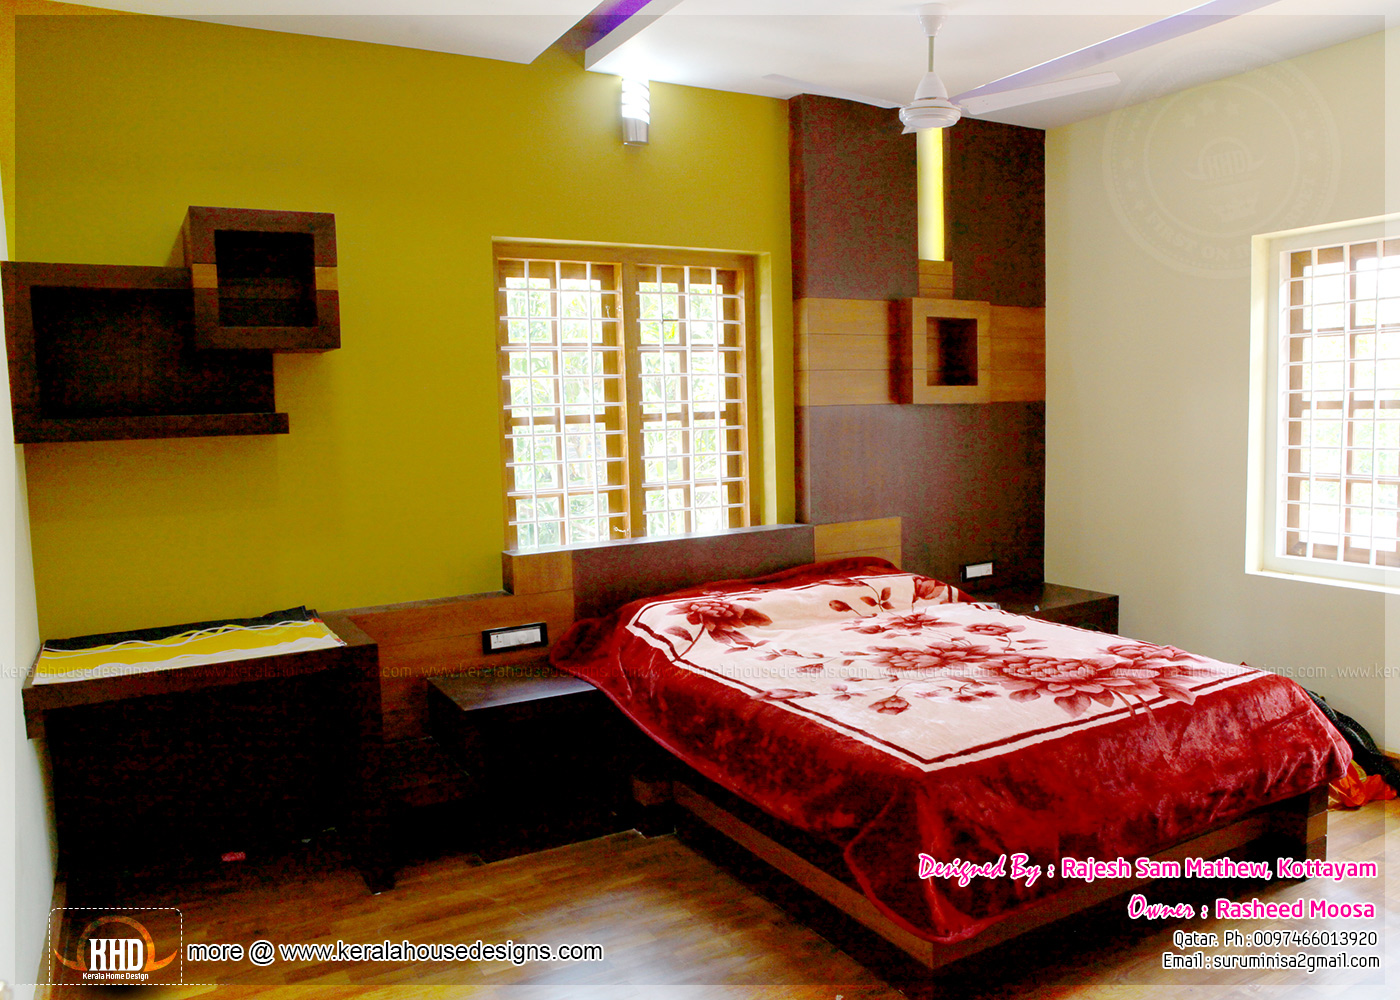 Kerala interior design with photos home kerala plans Low cost interior design for homes in kerala